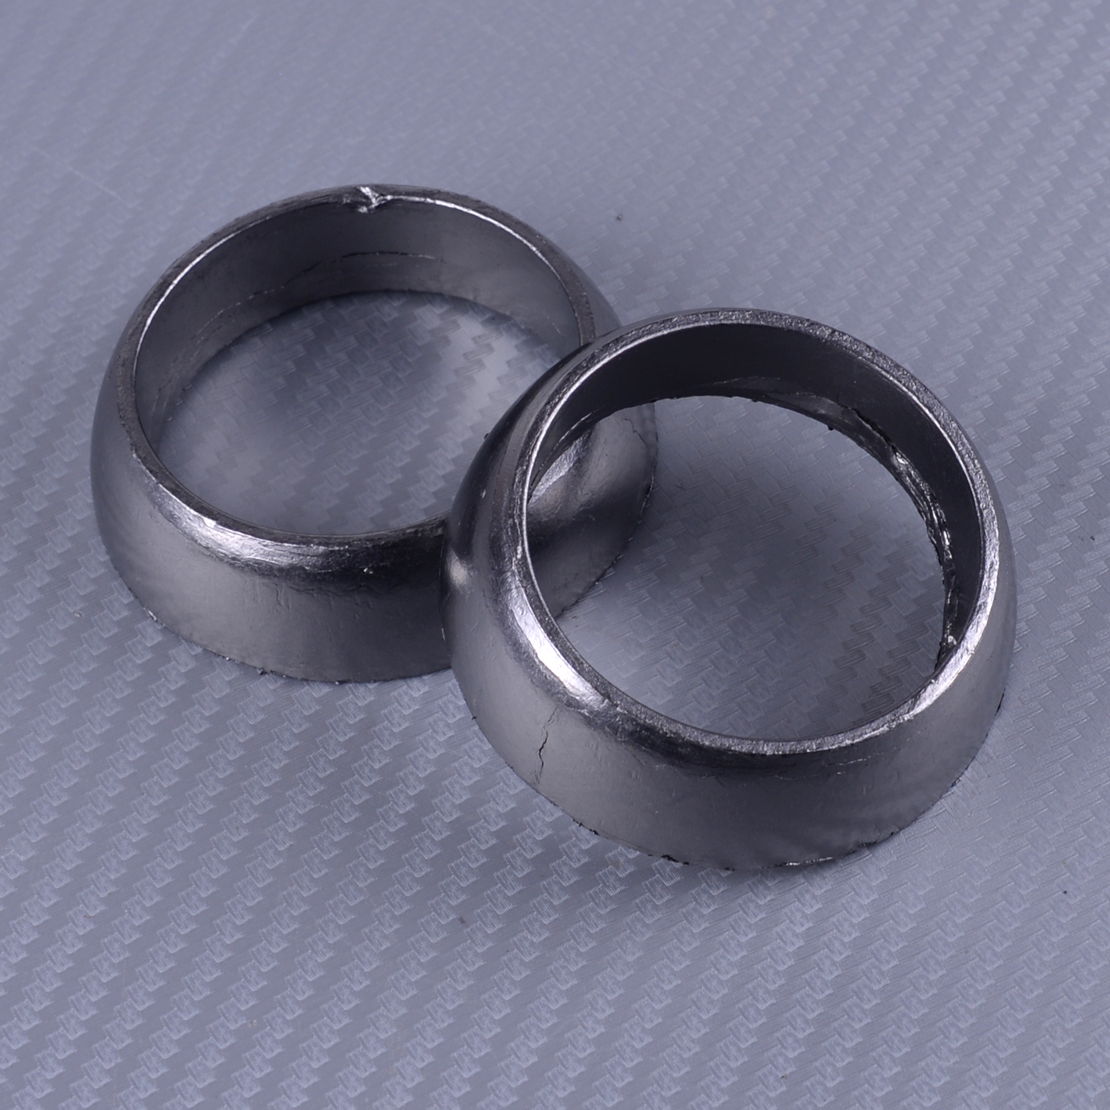 DWCX 2Pcs 3610047 Metal Silver Twin Exhaust Donut Seal Gasket Fit For Polaris Sportsman 600 700 800